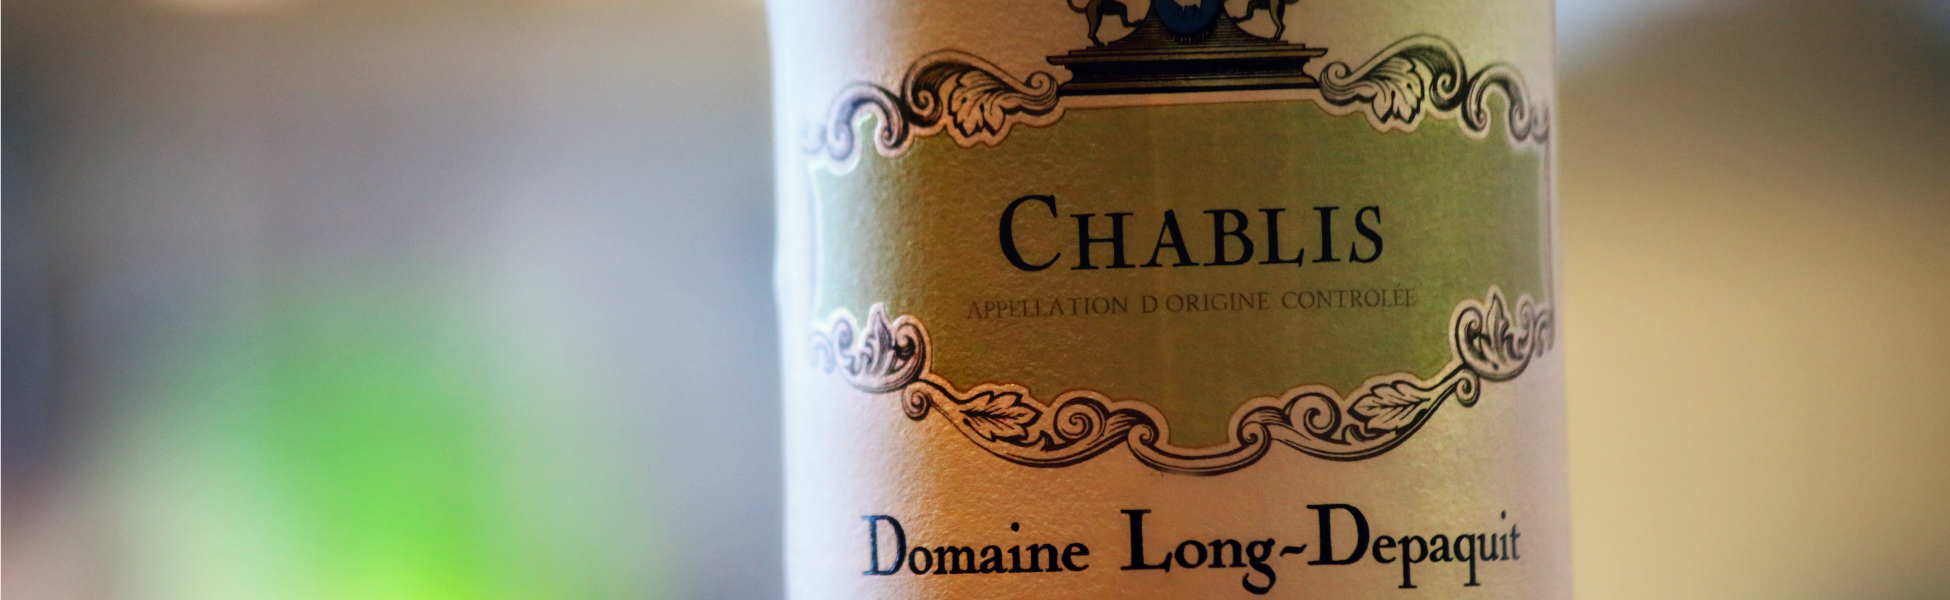 Chablis Premier Cru - Les Vaillons - White wine from France ... | 600x1950